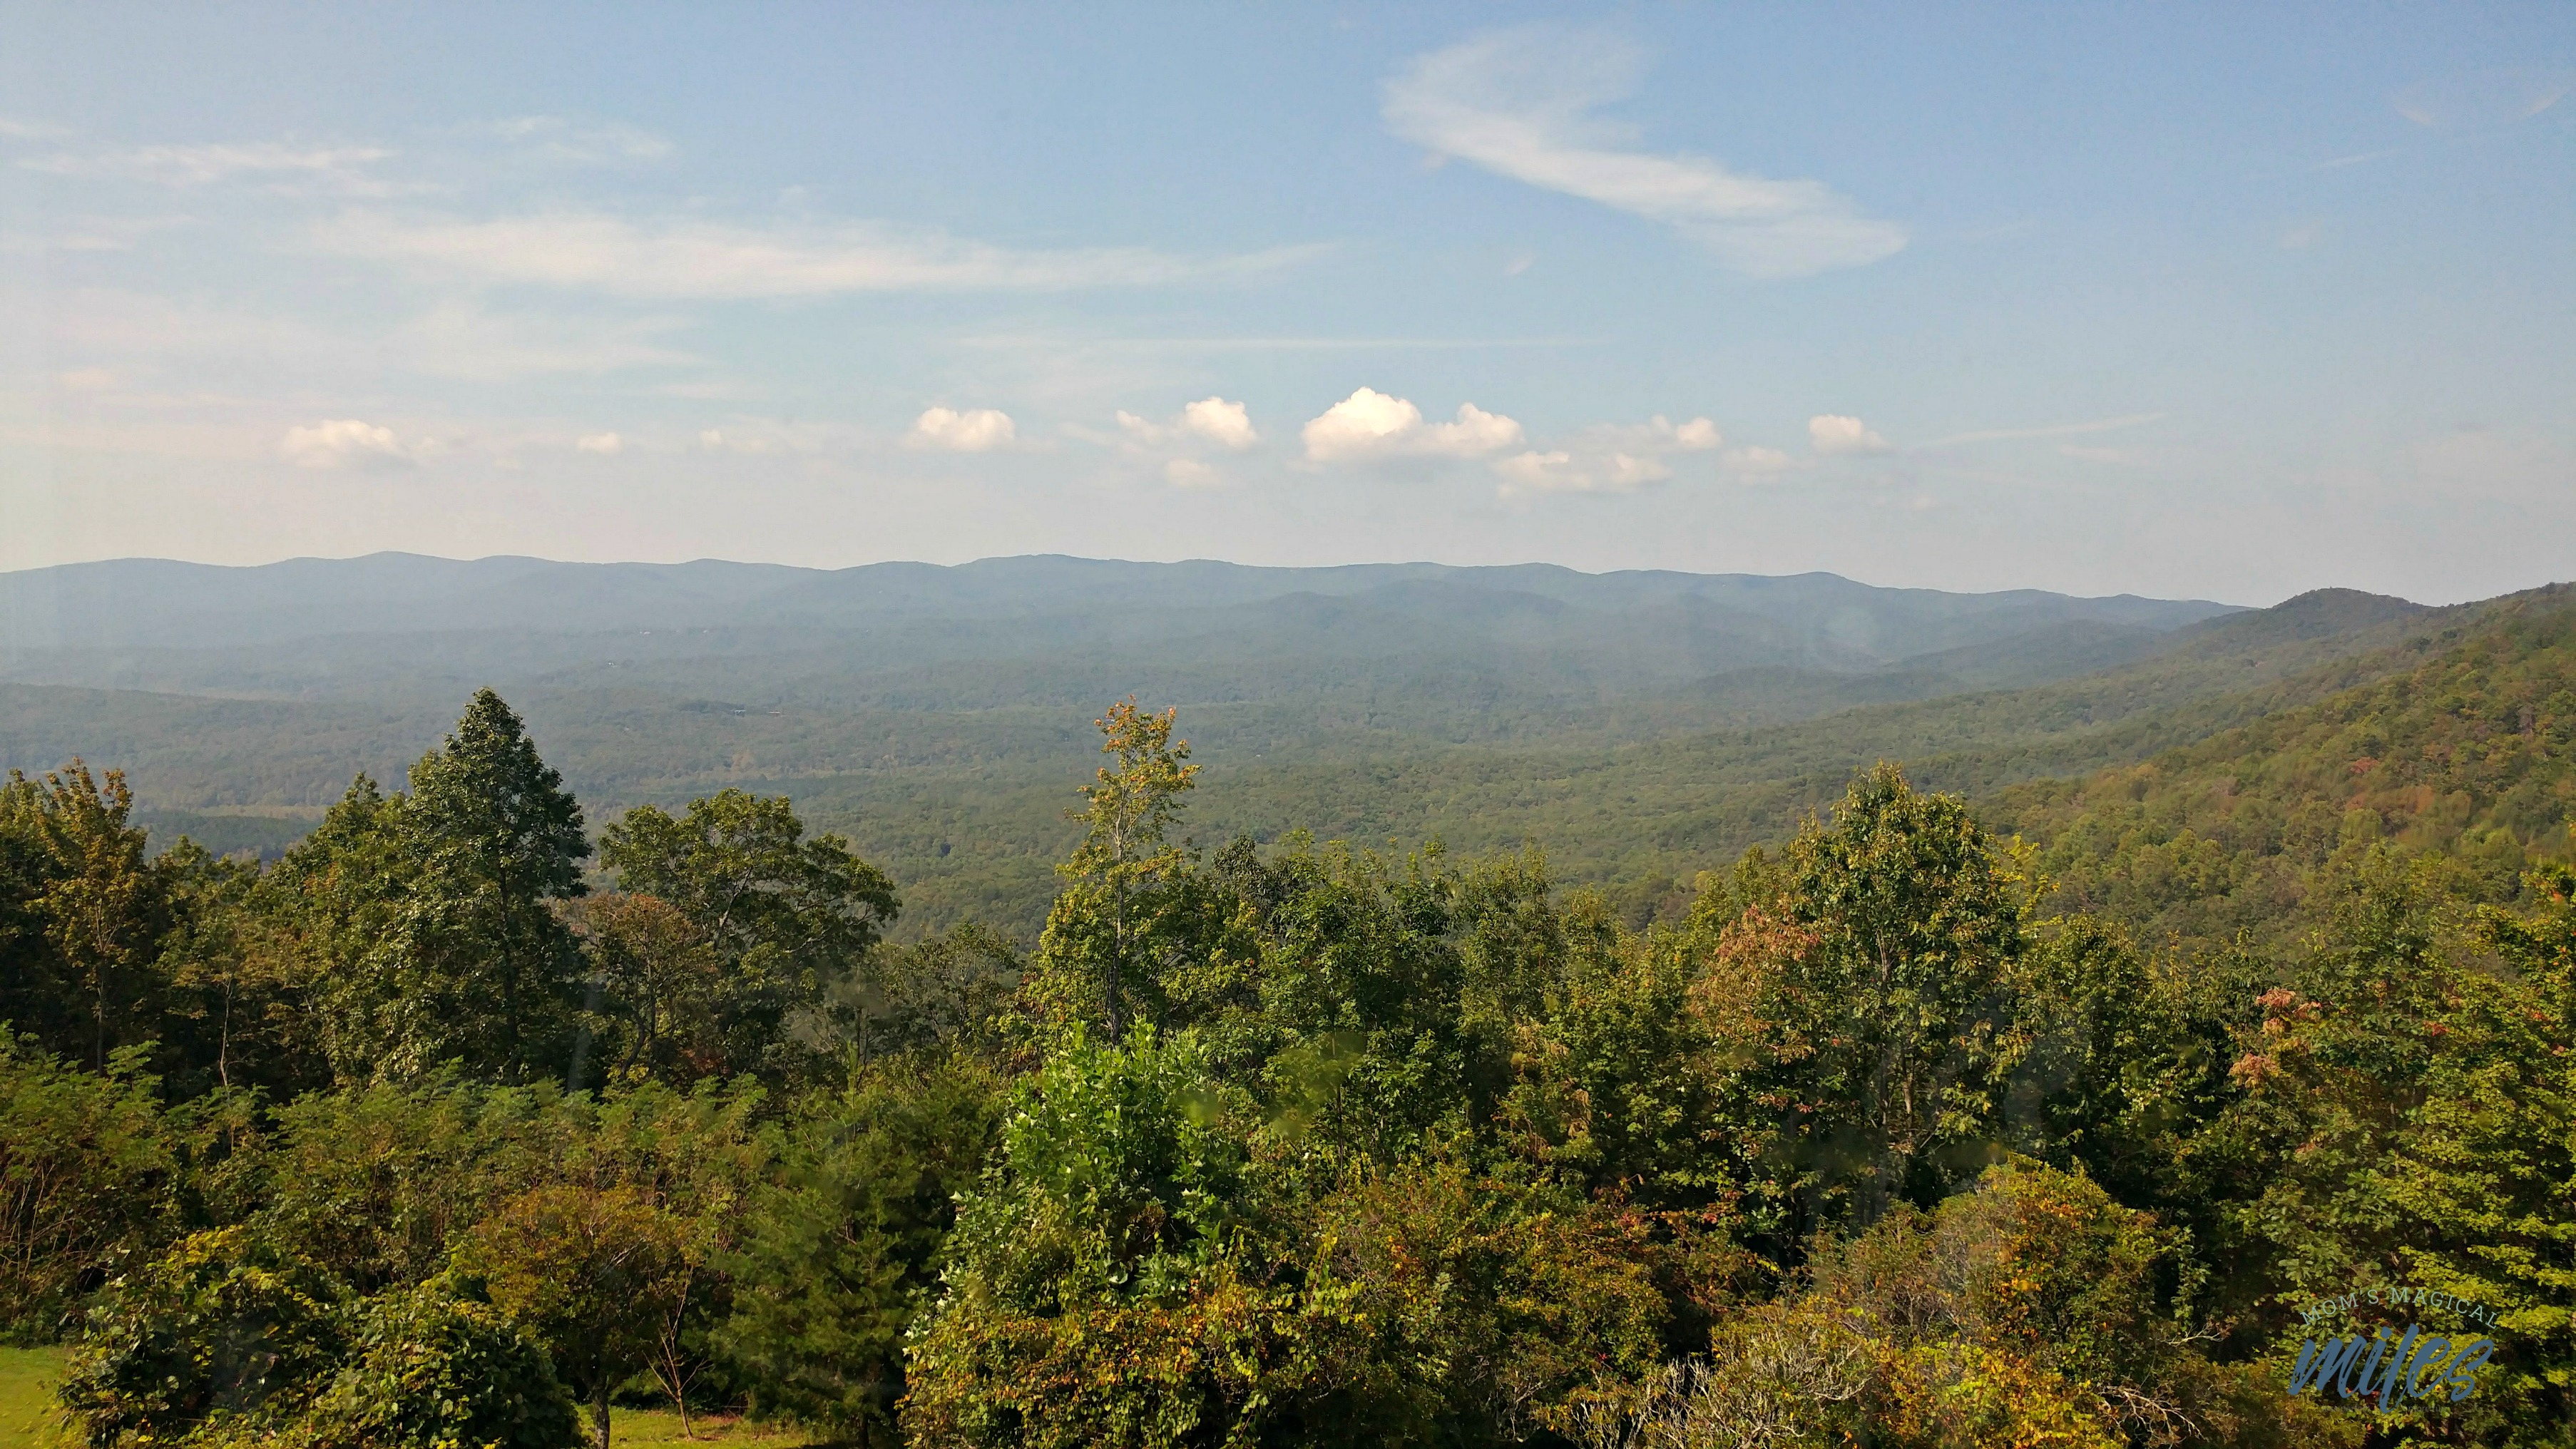 Thew view from the dining room of the Amicalola Falls State Park Lodge dining room is magnificent!